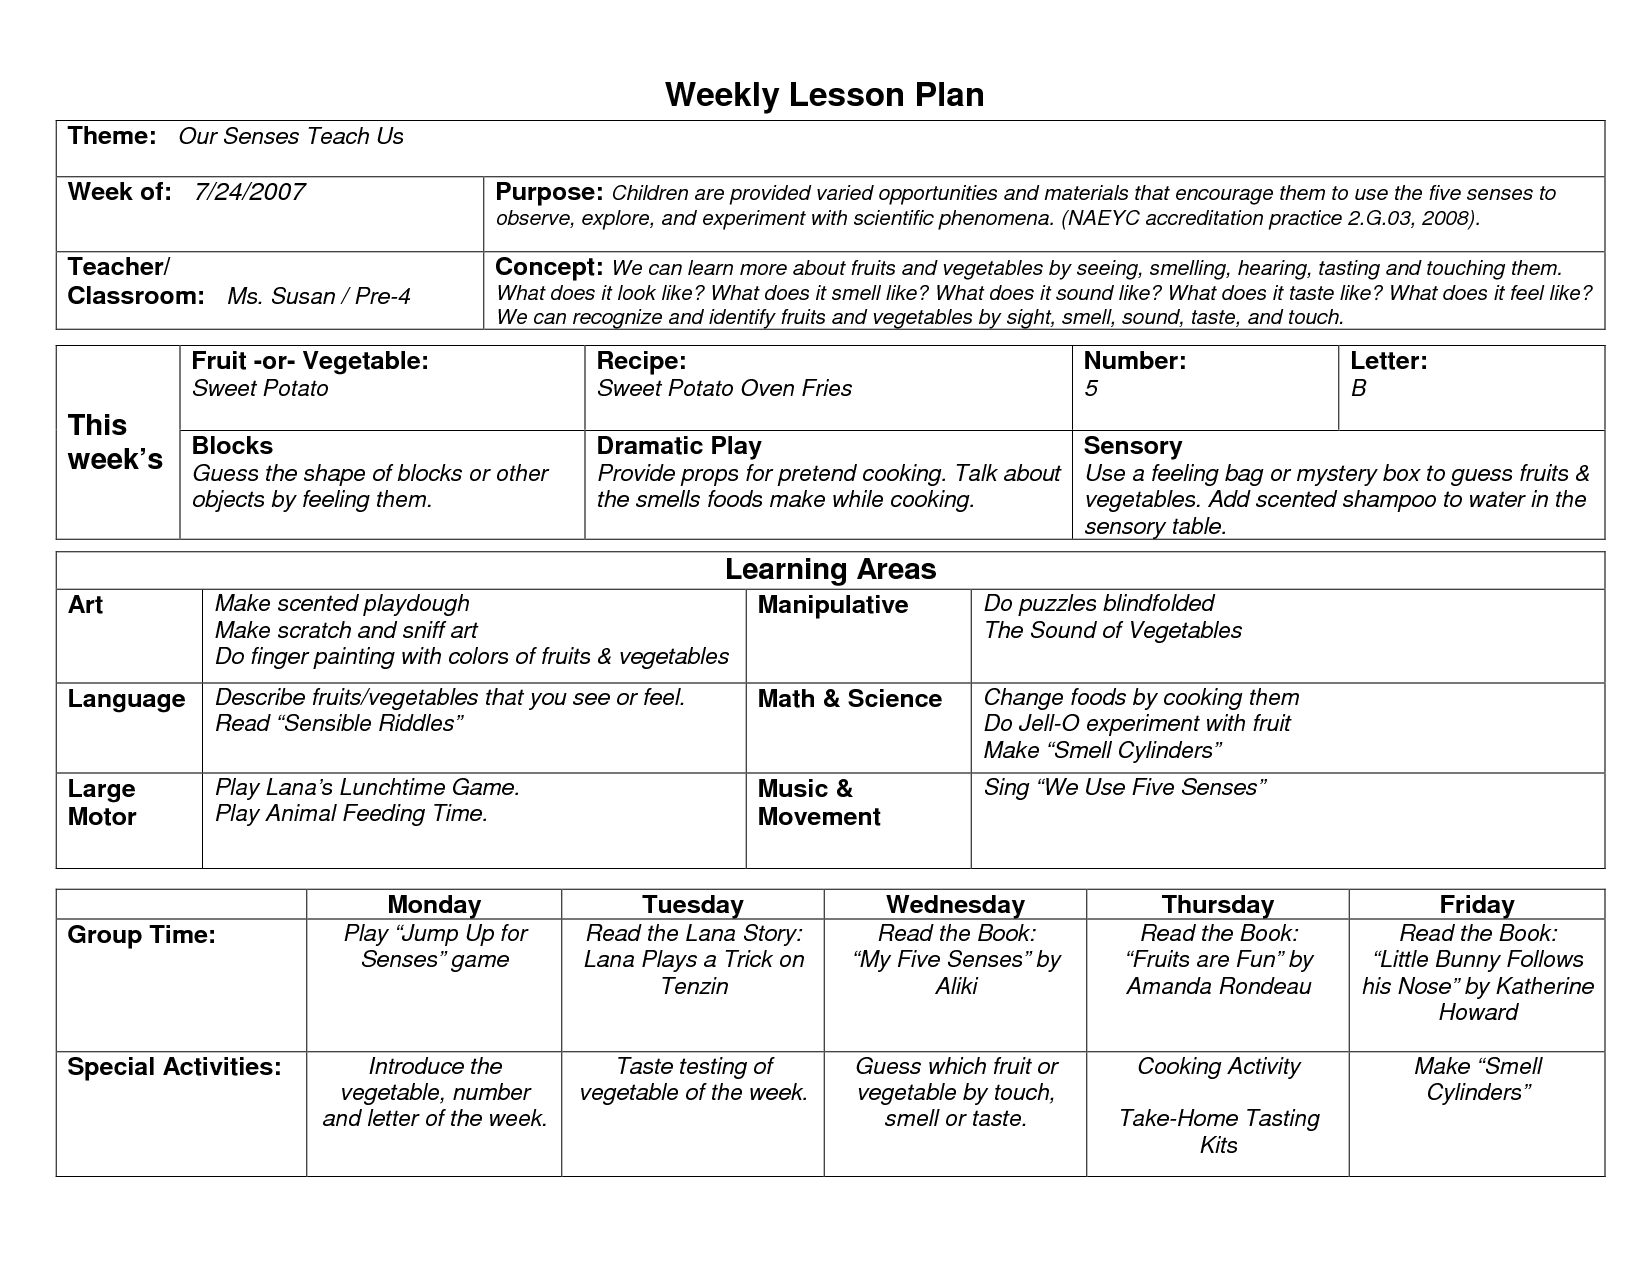 NAEYC Lesson Plan Template For Preschool Sample Weekly Lesson - Lesson plan template for preschool